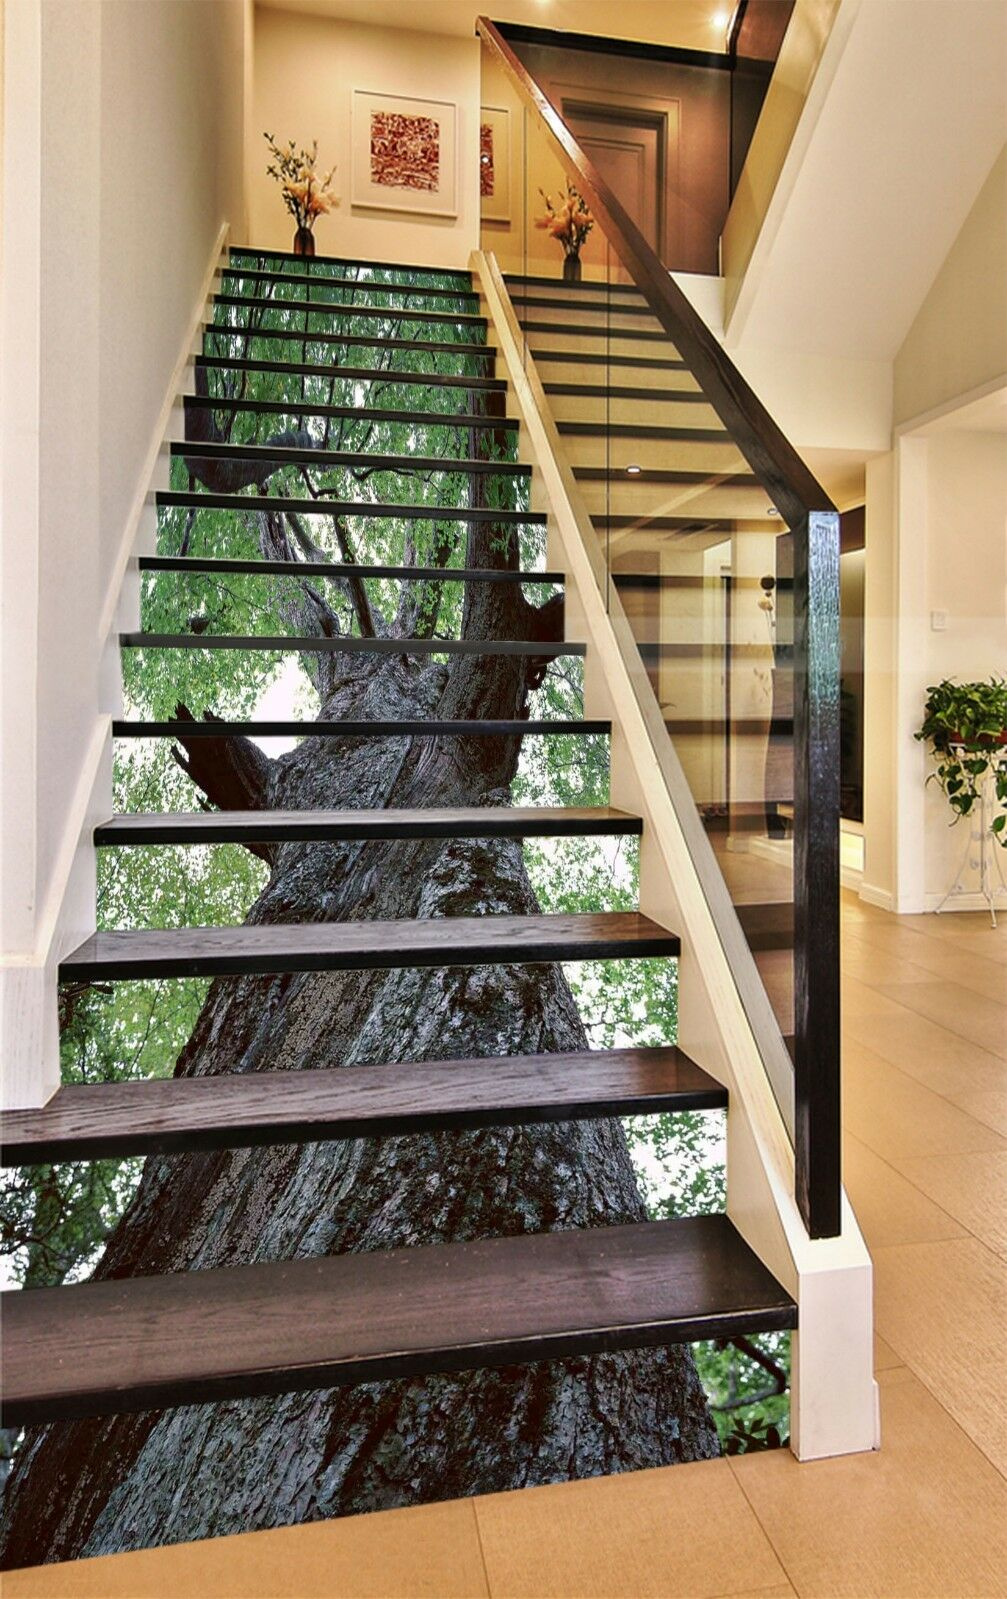 3D Trunk Leaves 3 Stair Risers Decoration Photo Mural Vinyl Decal Wallpaper CA